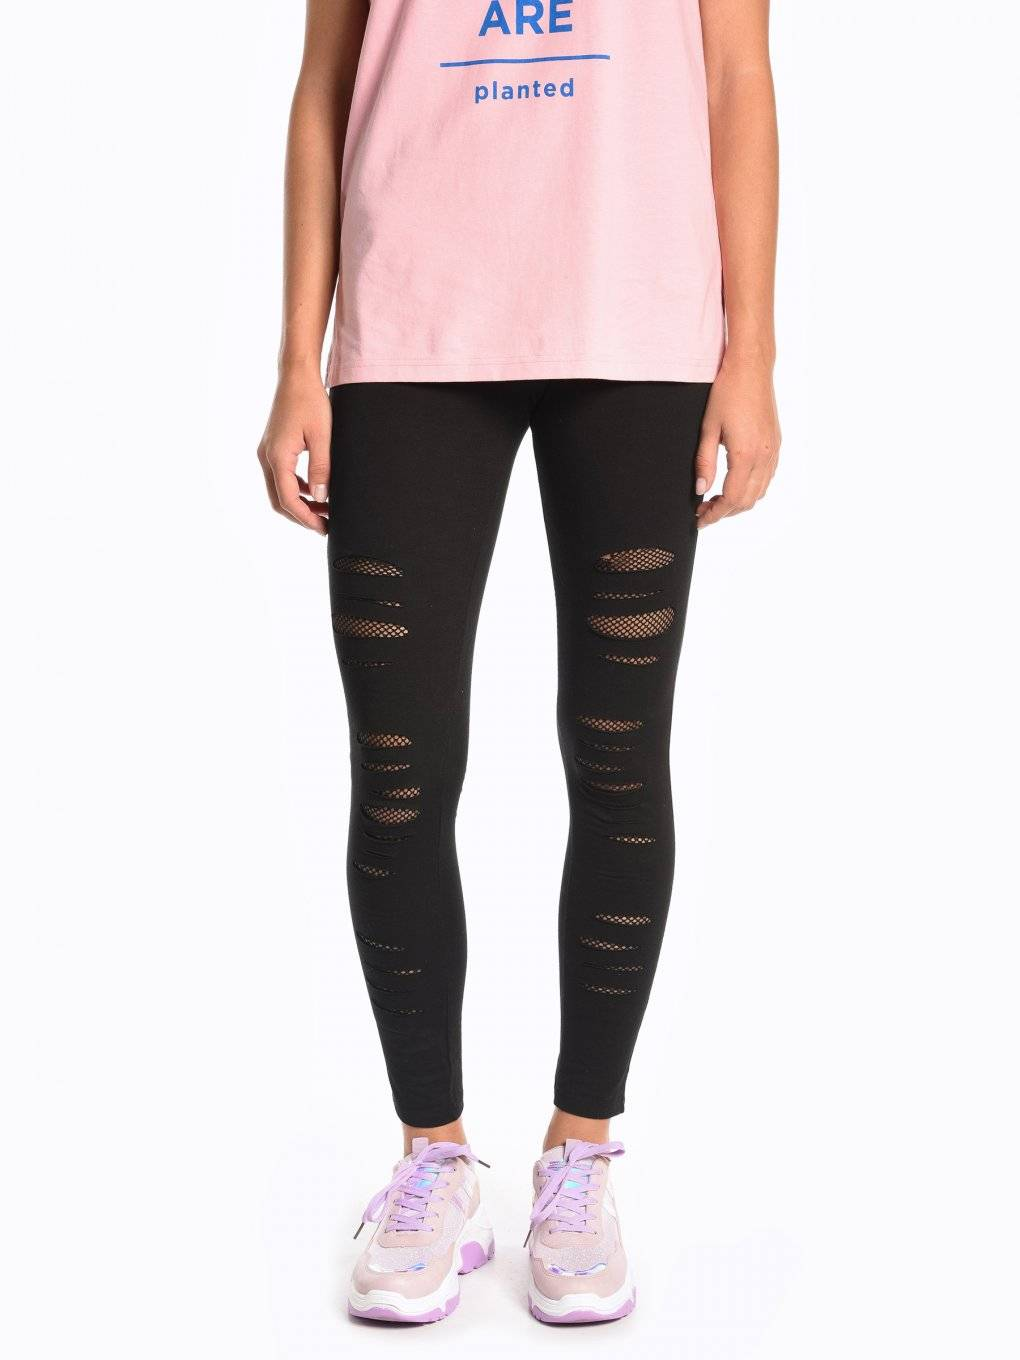 Distressed cotton leggings